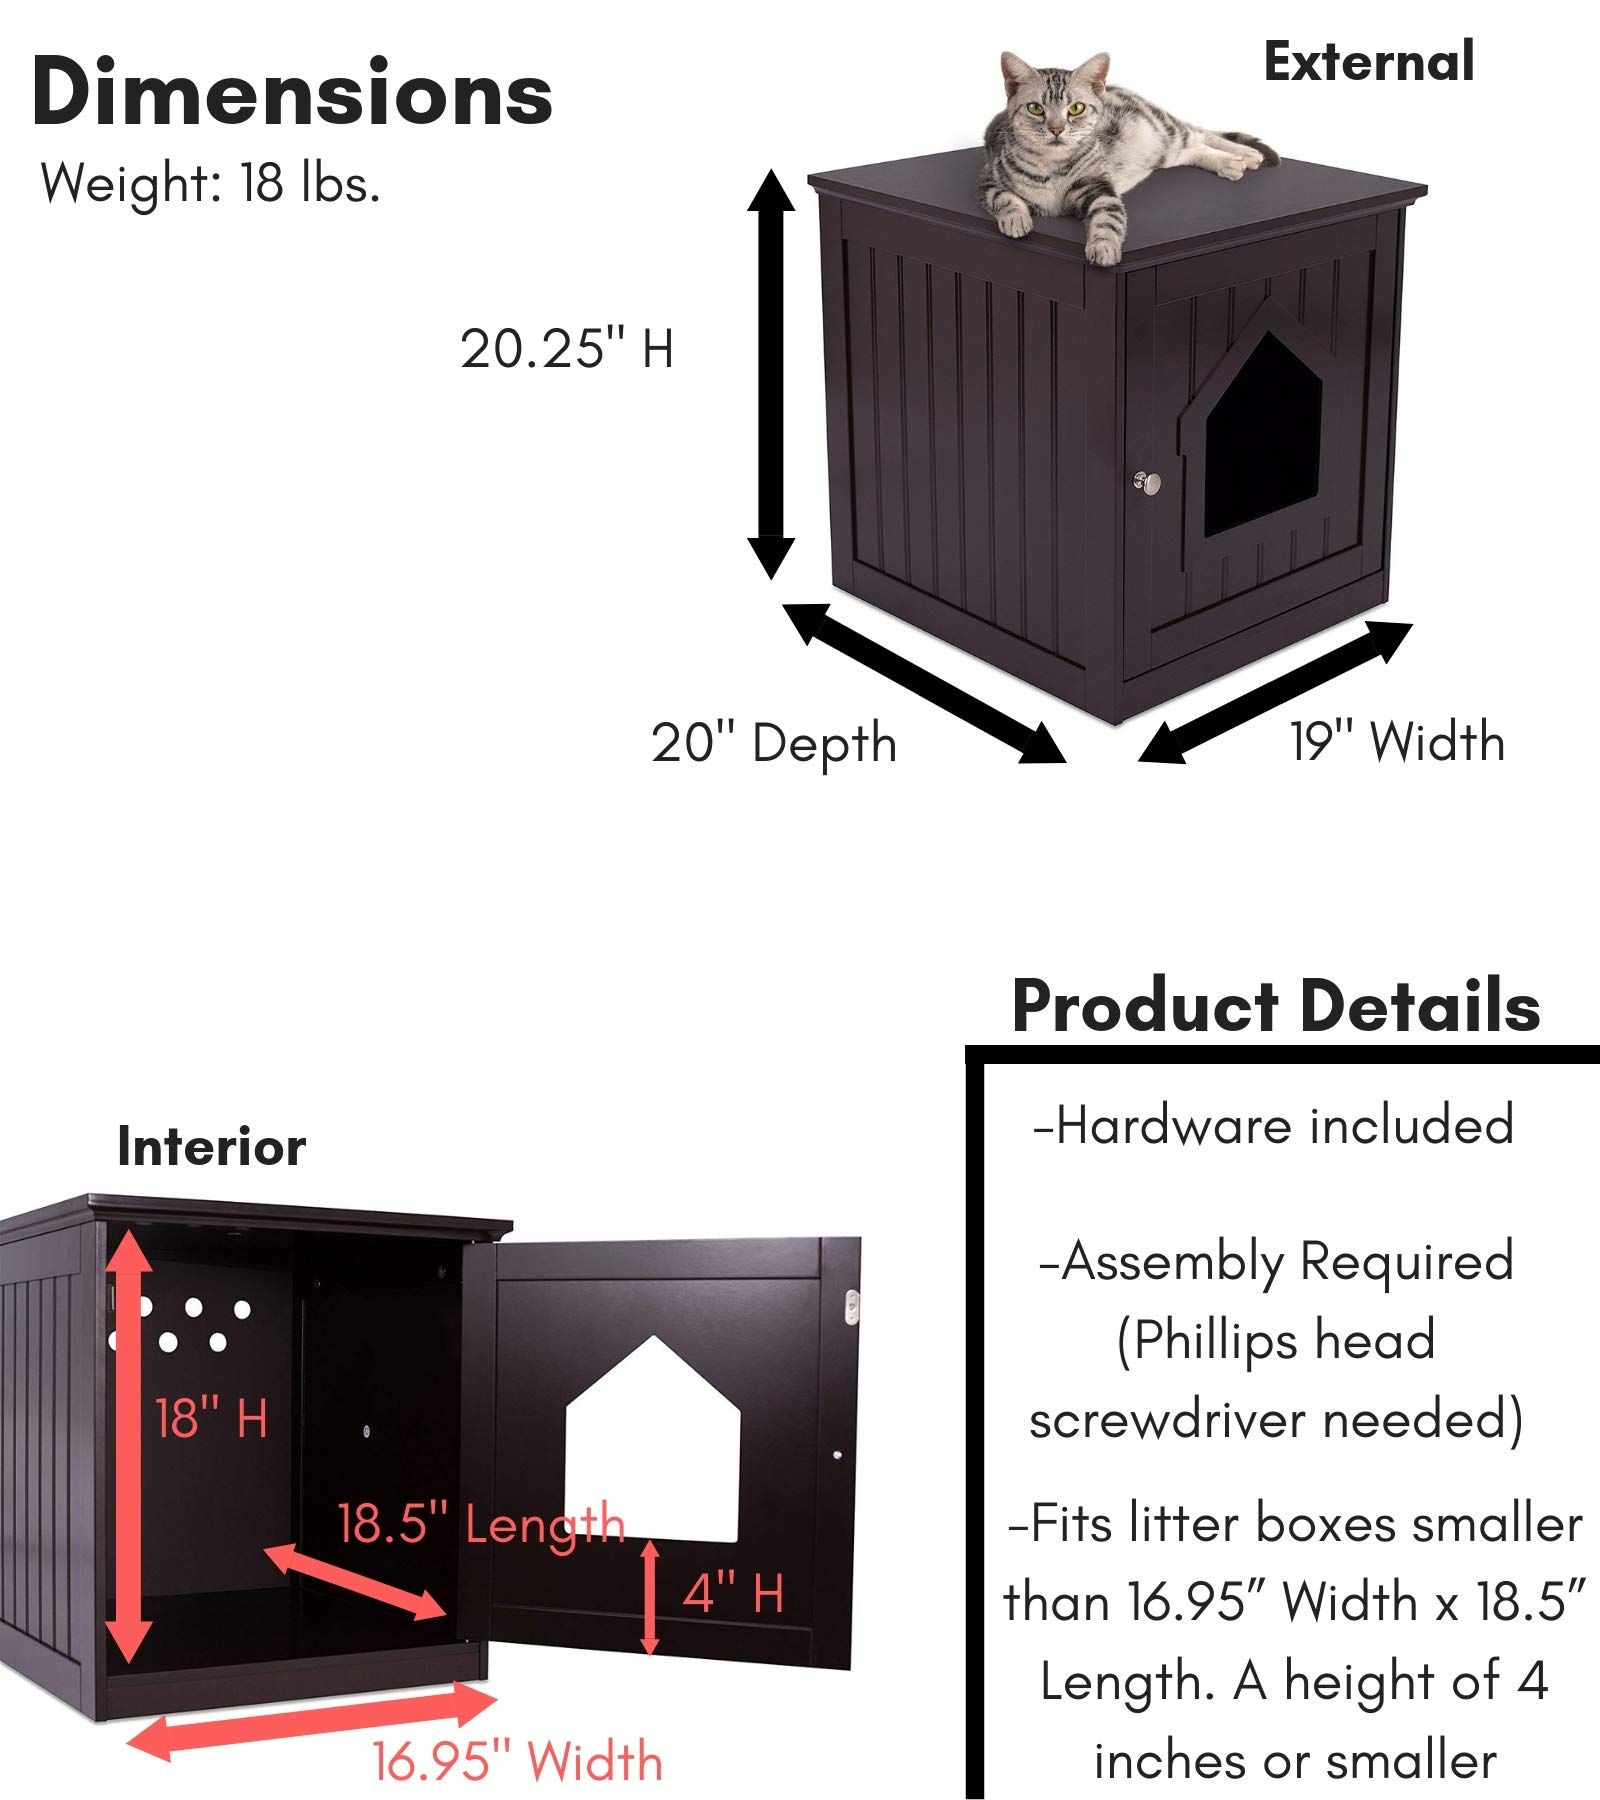 Internets Best Decorative Cat House And Side Table Cat Home Nightstand Indoor Pet Crate Litter Box Enclosure Espre Cat House Dog Kennel Dog Kennel Furniture